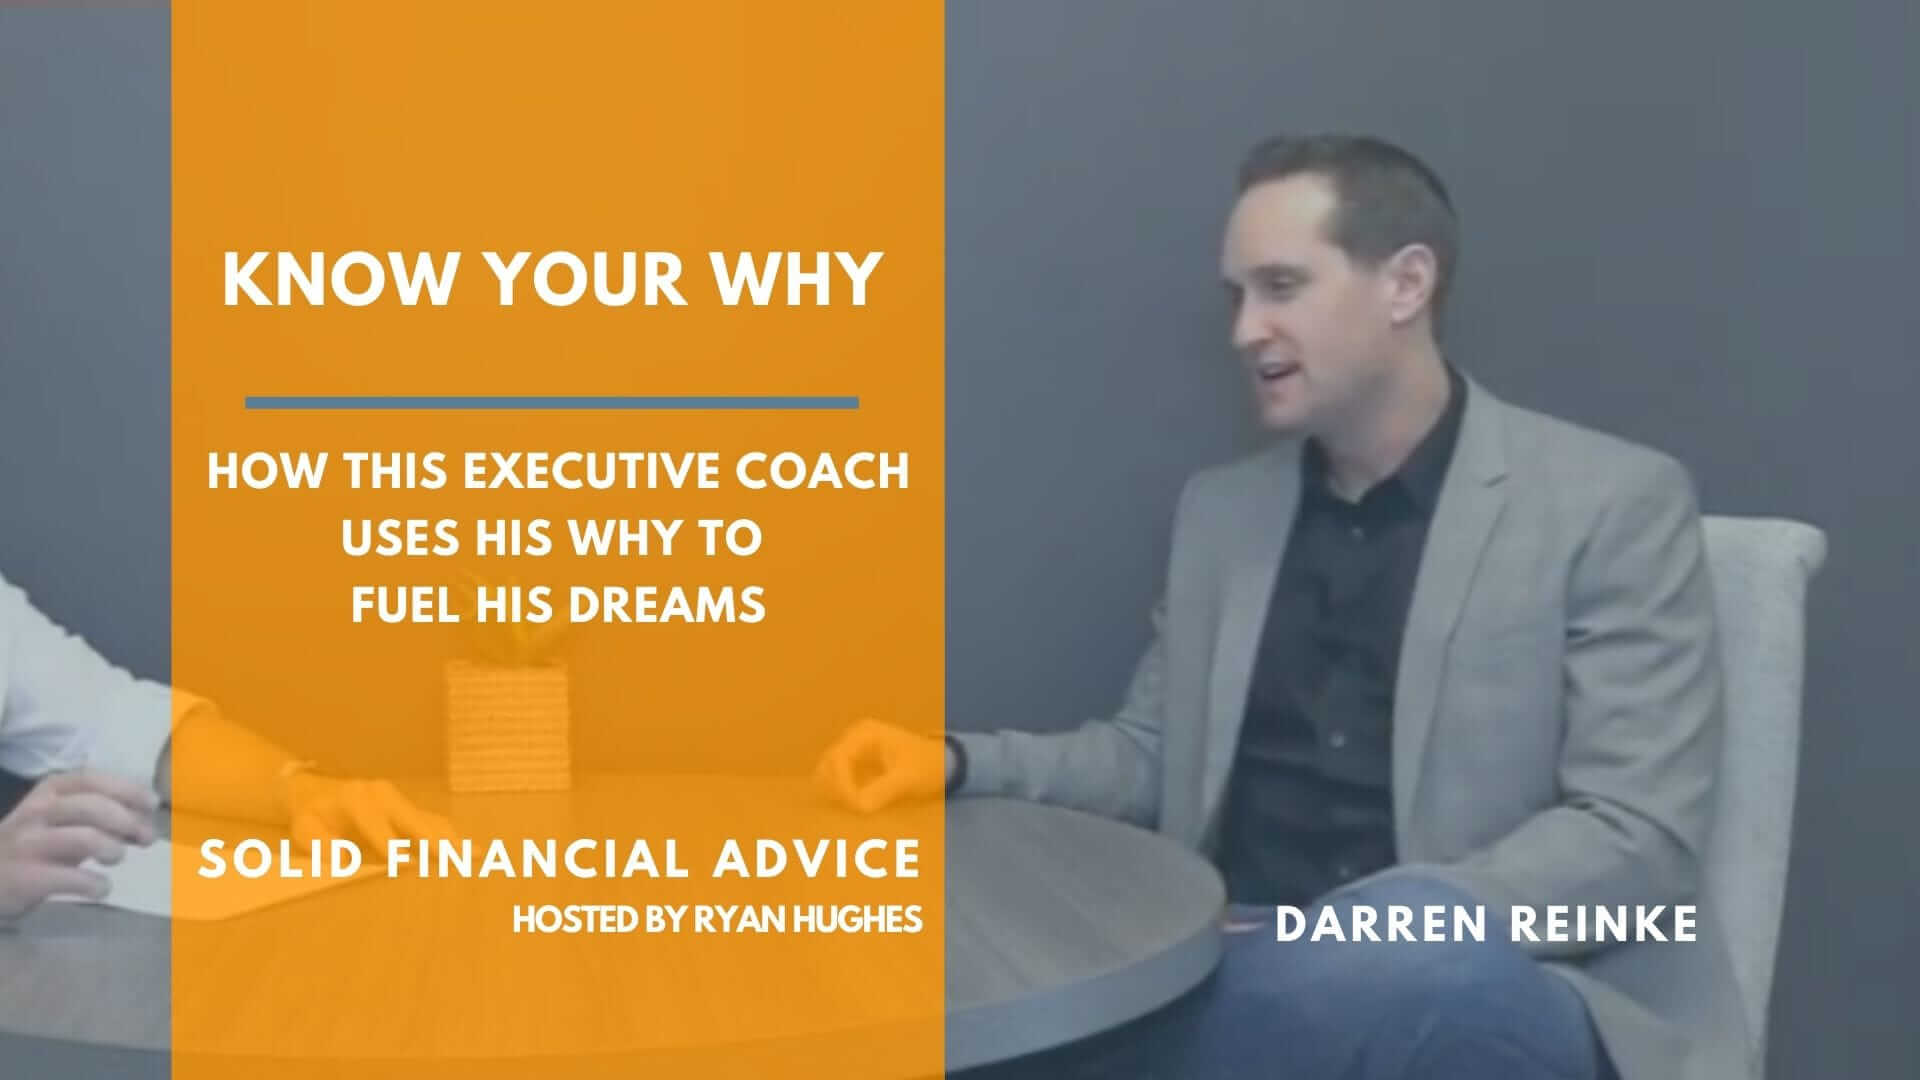 Darren Reinke Solid Financial Advice